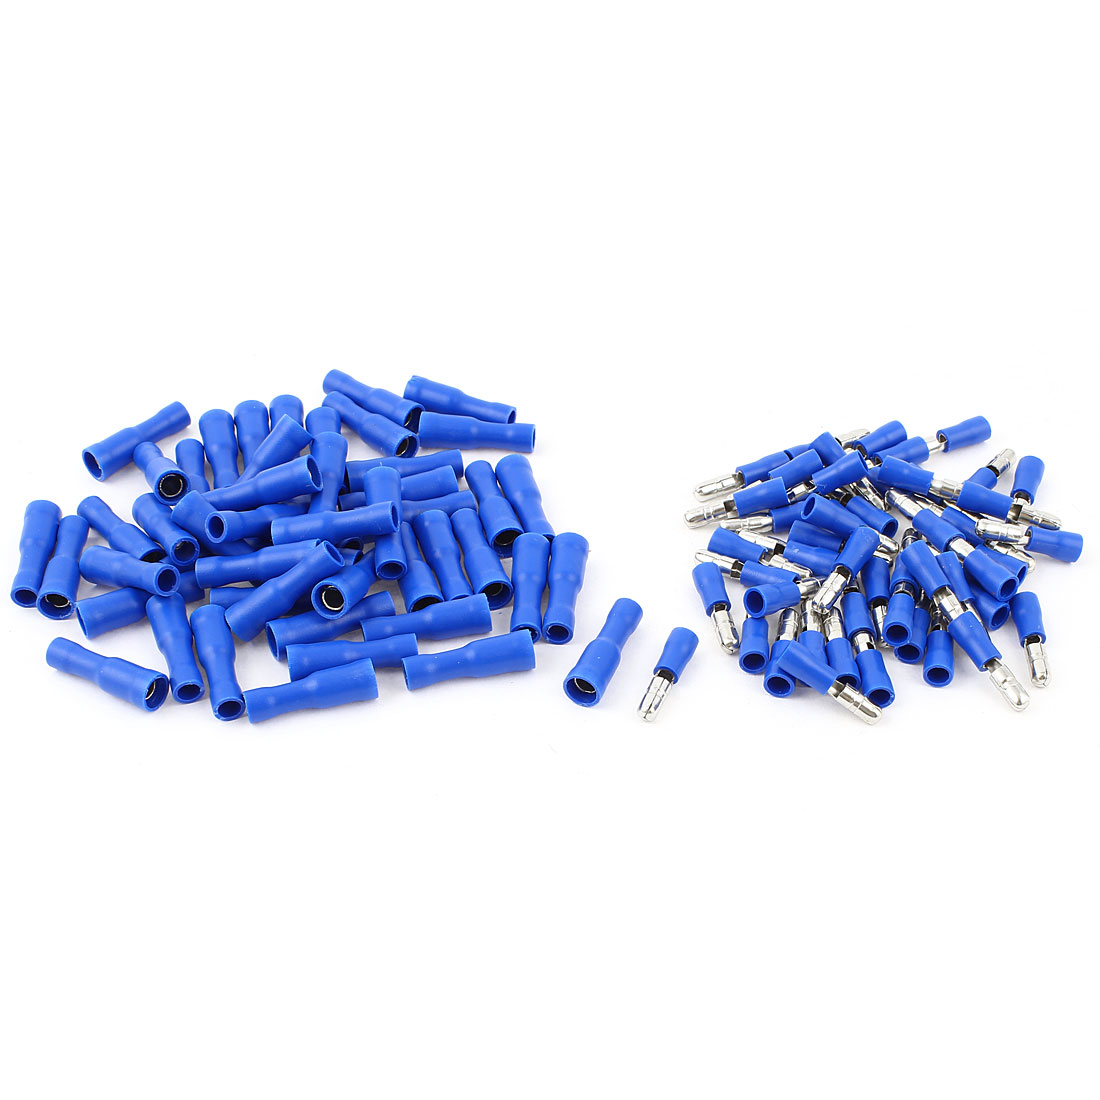 50 Pair 22-16 AWG Cable Wire Connector Male Female Crimp Terminals Blue